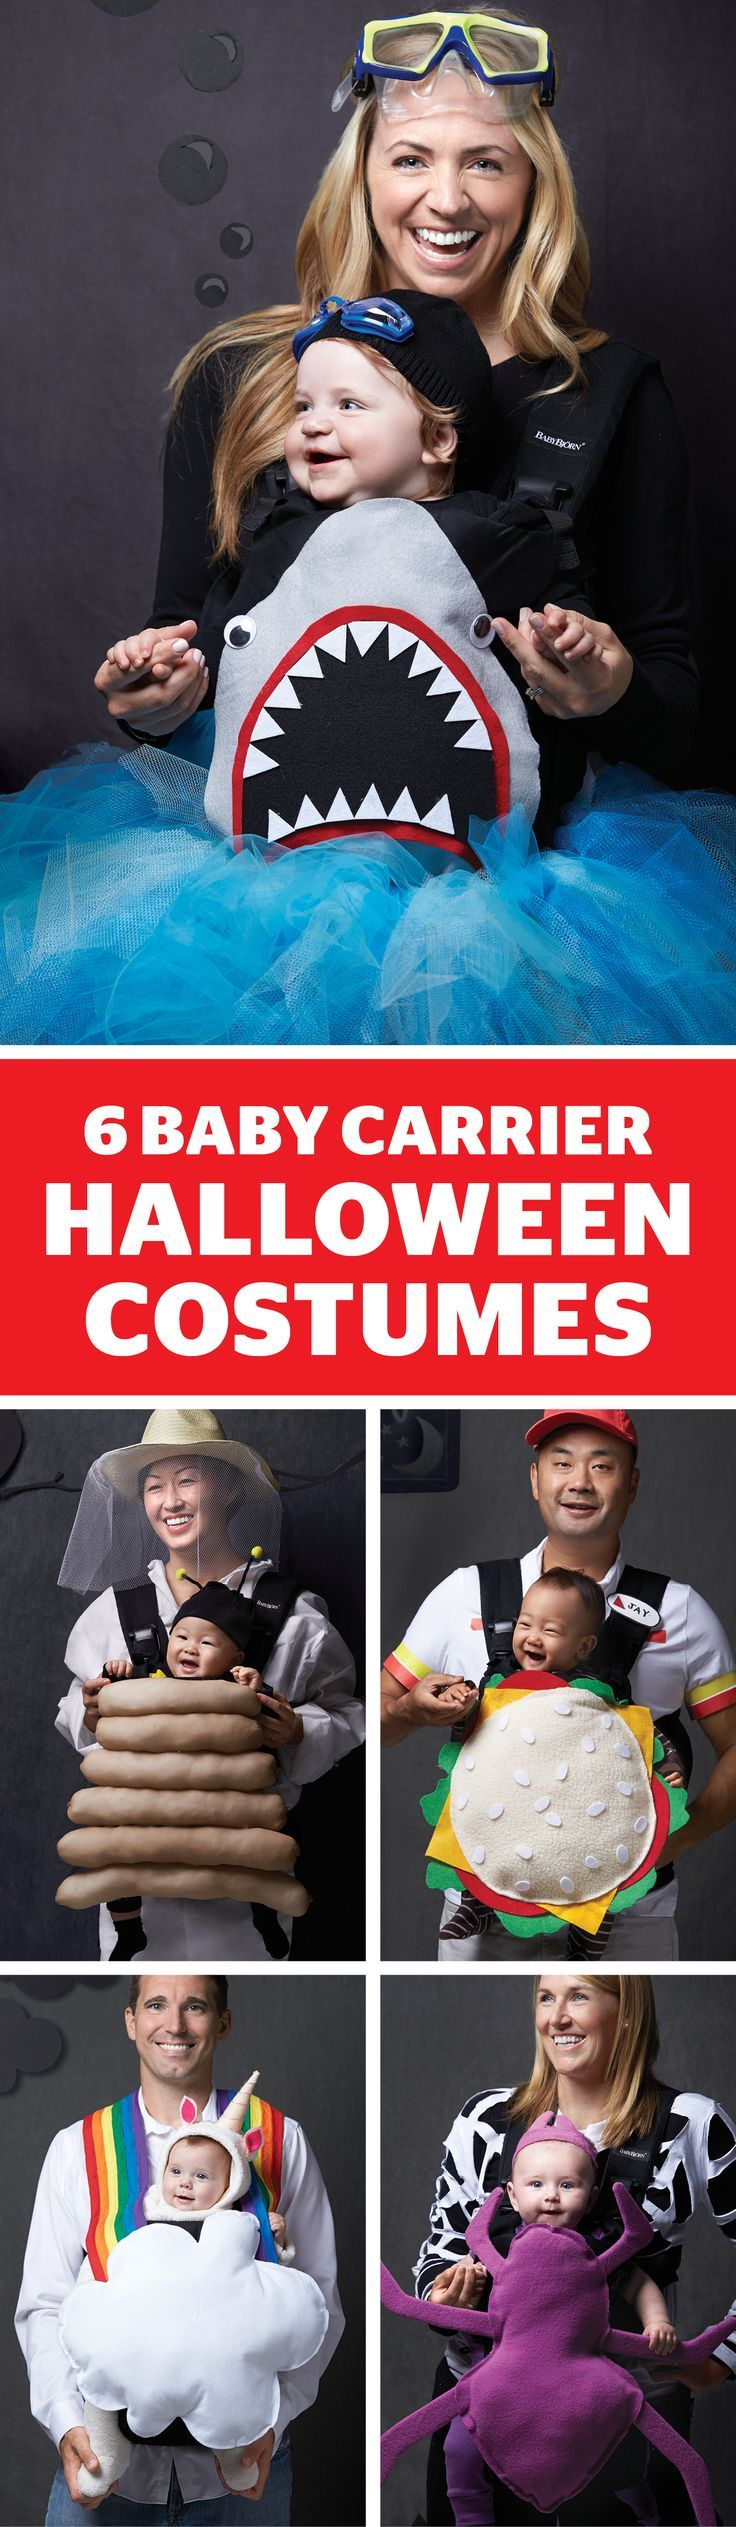 6 fun baby carrier costumes for halloween - Halloween Costumes For Parents And Baby